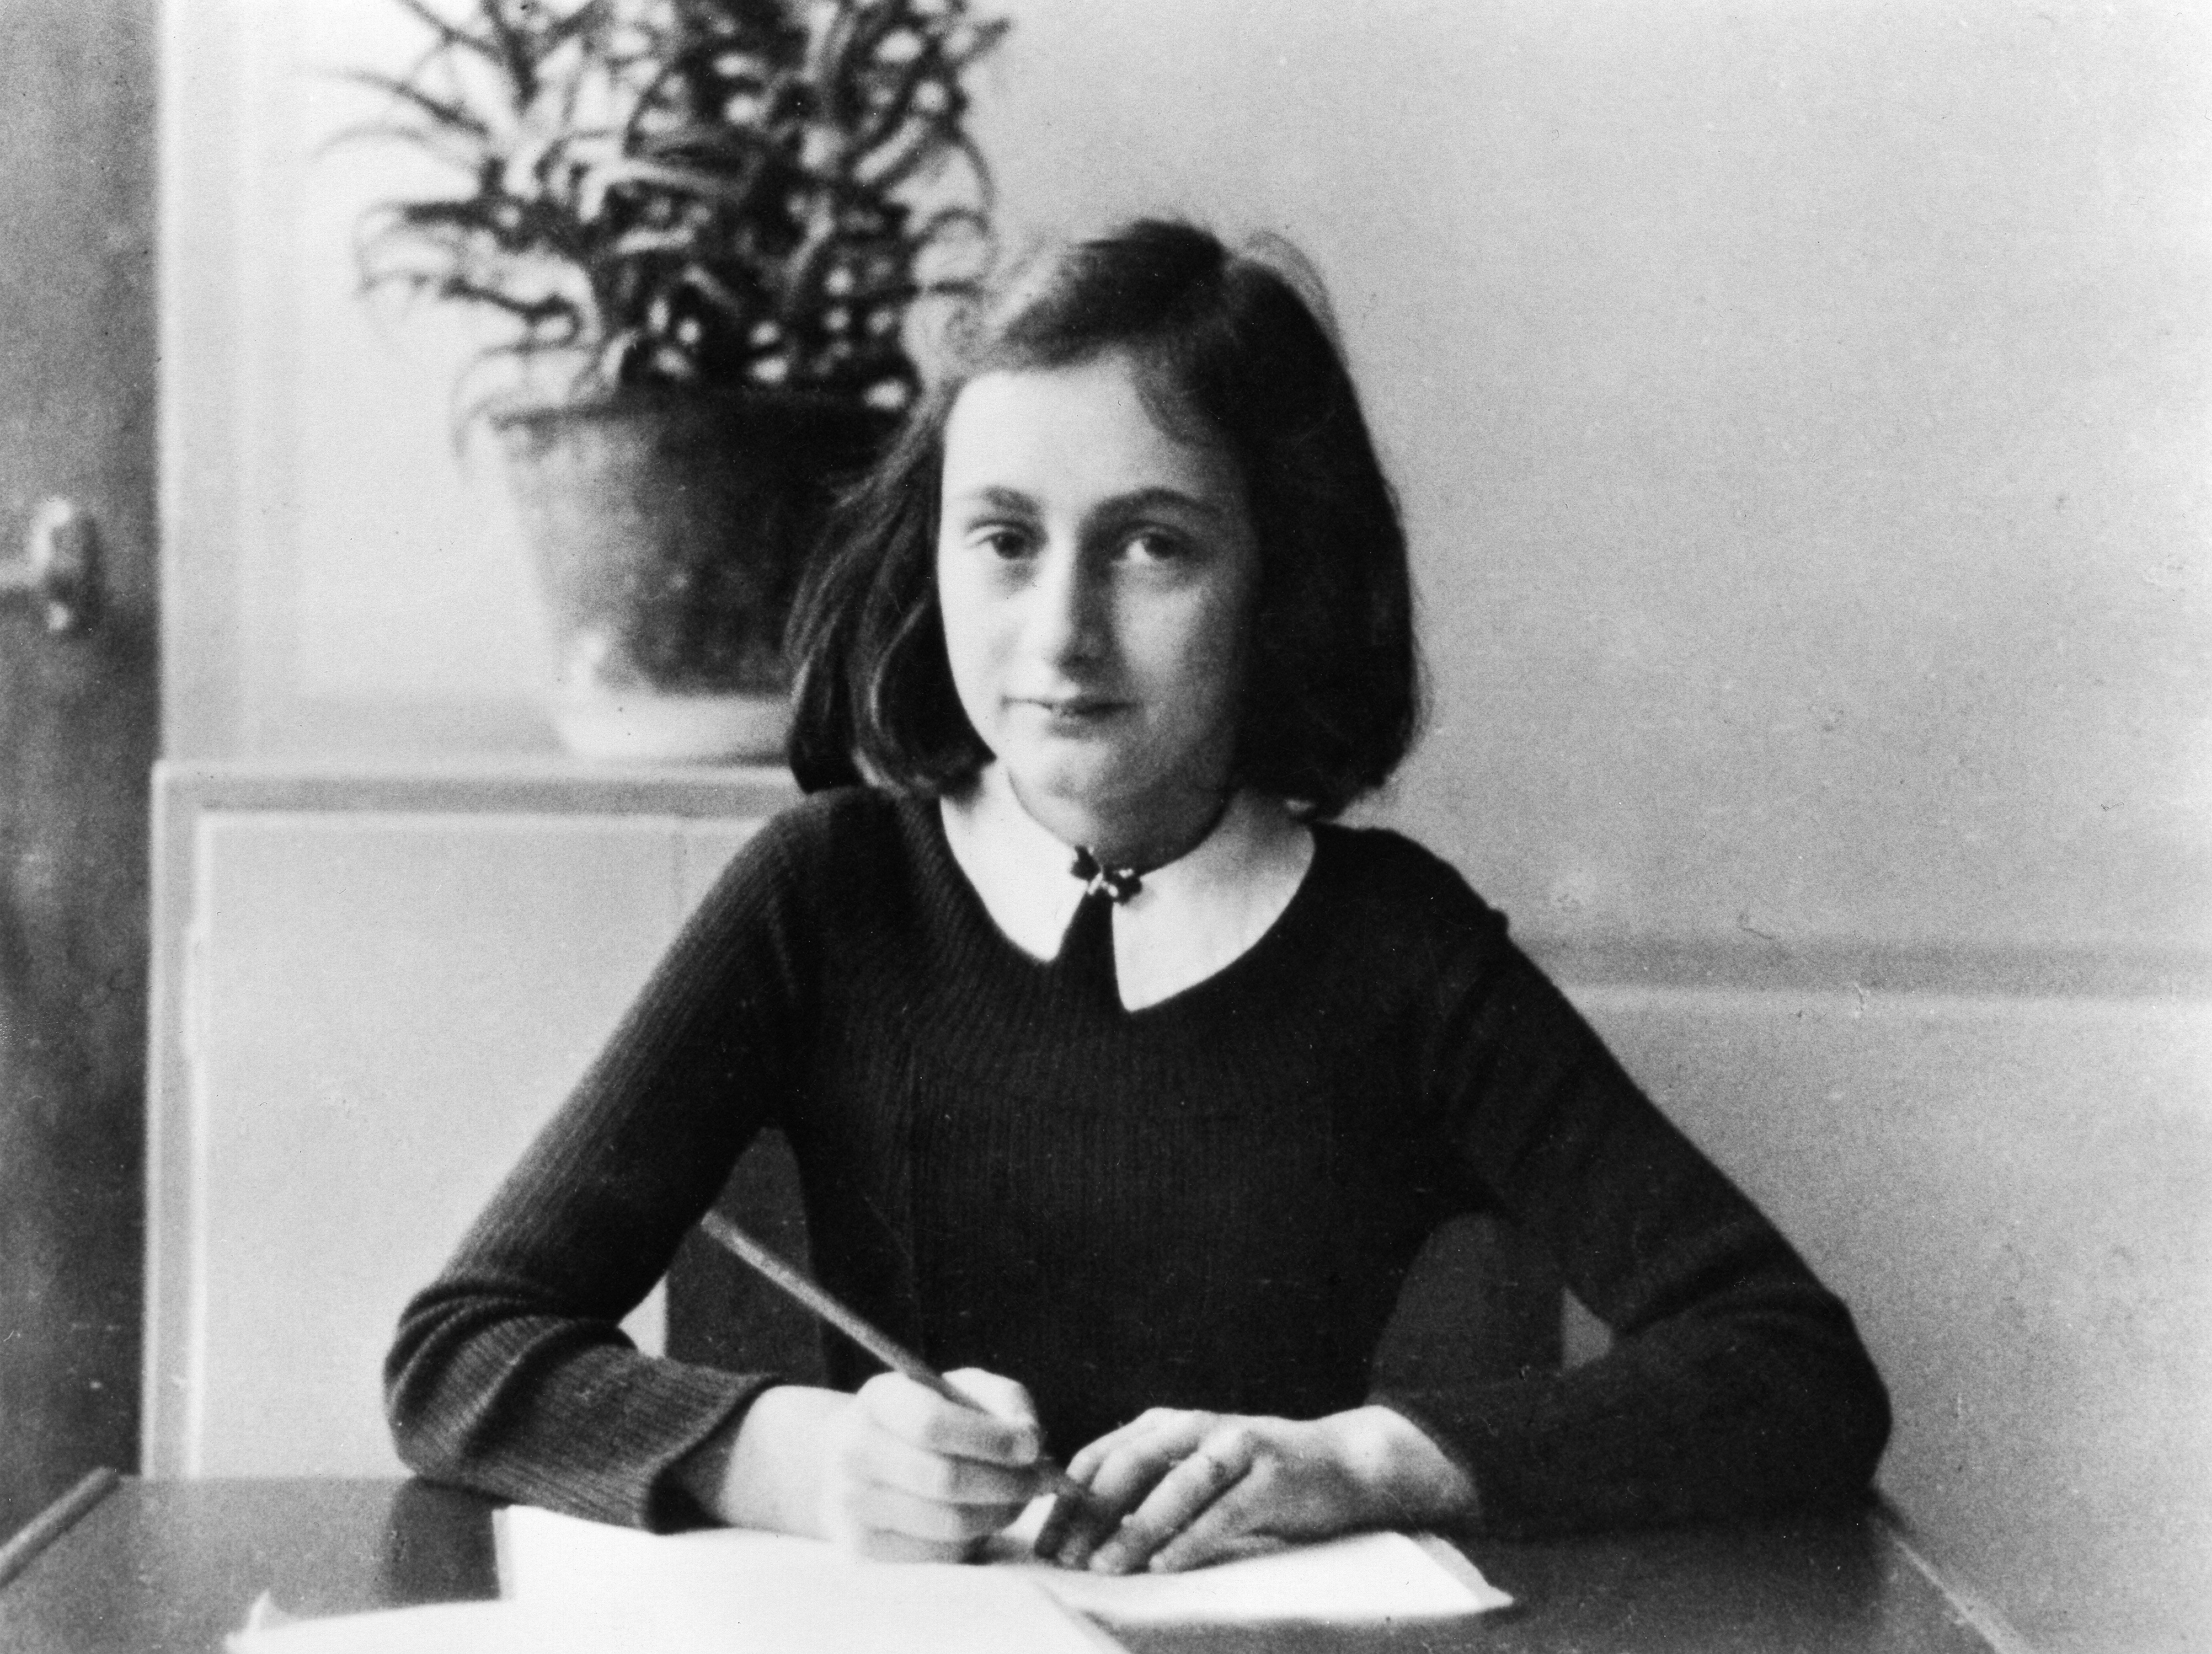 Anne Frank's diary, published after her death in the Bergen-Belsen camp, became an international bestseller.